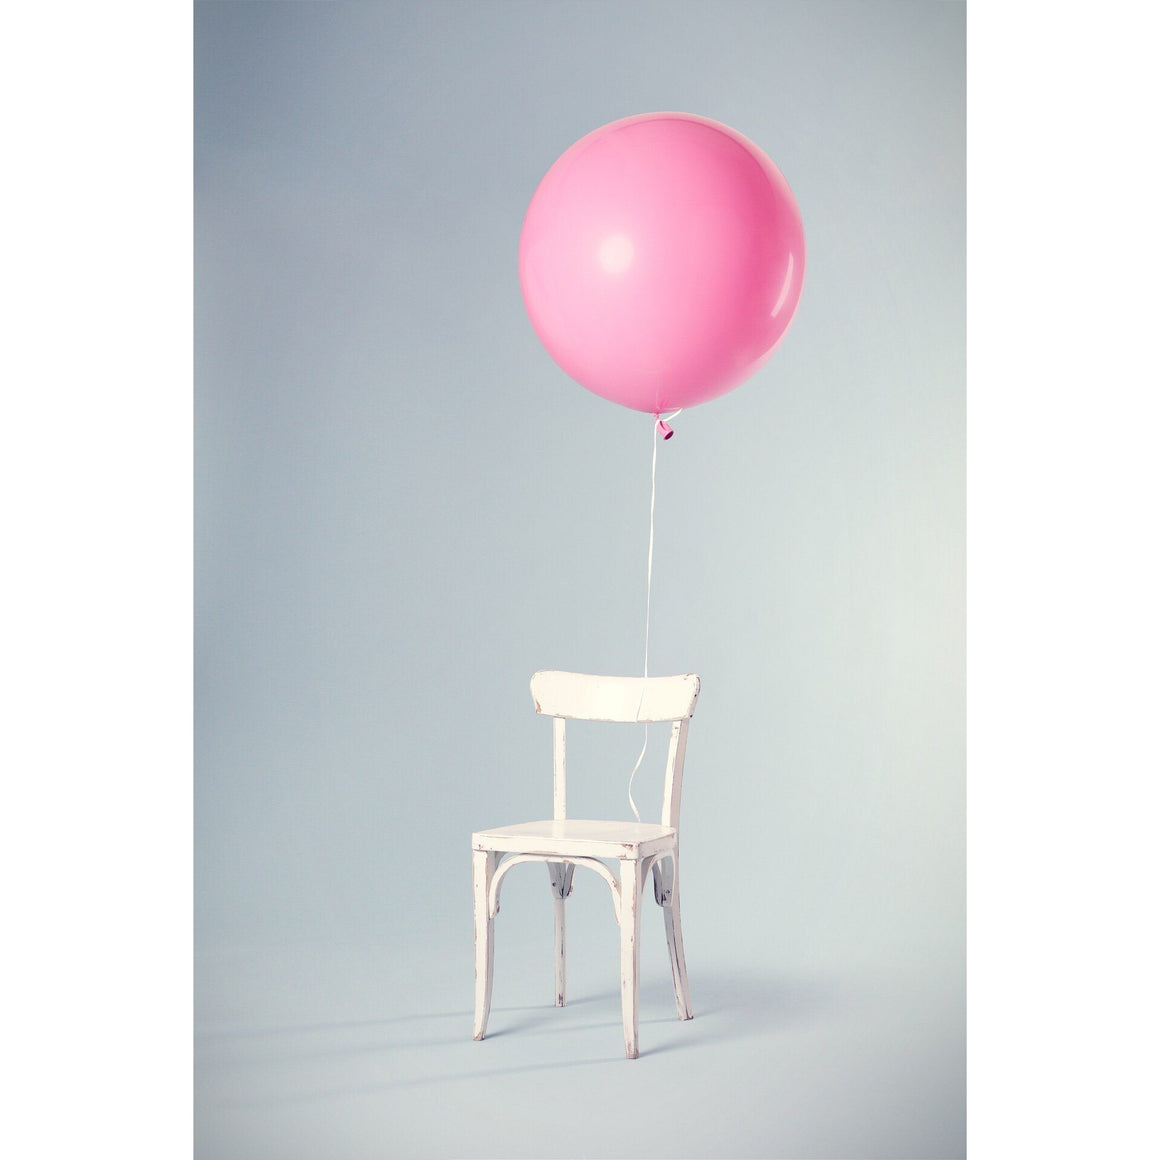 "BALLOON BAR - 36"" JUMBO ROUND PINK, Balloons, QUALATEX - Bon + Co. Party Studio"